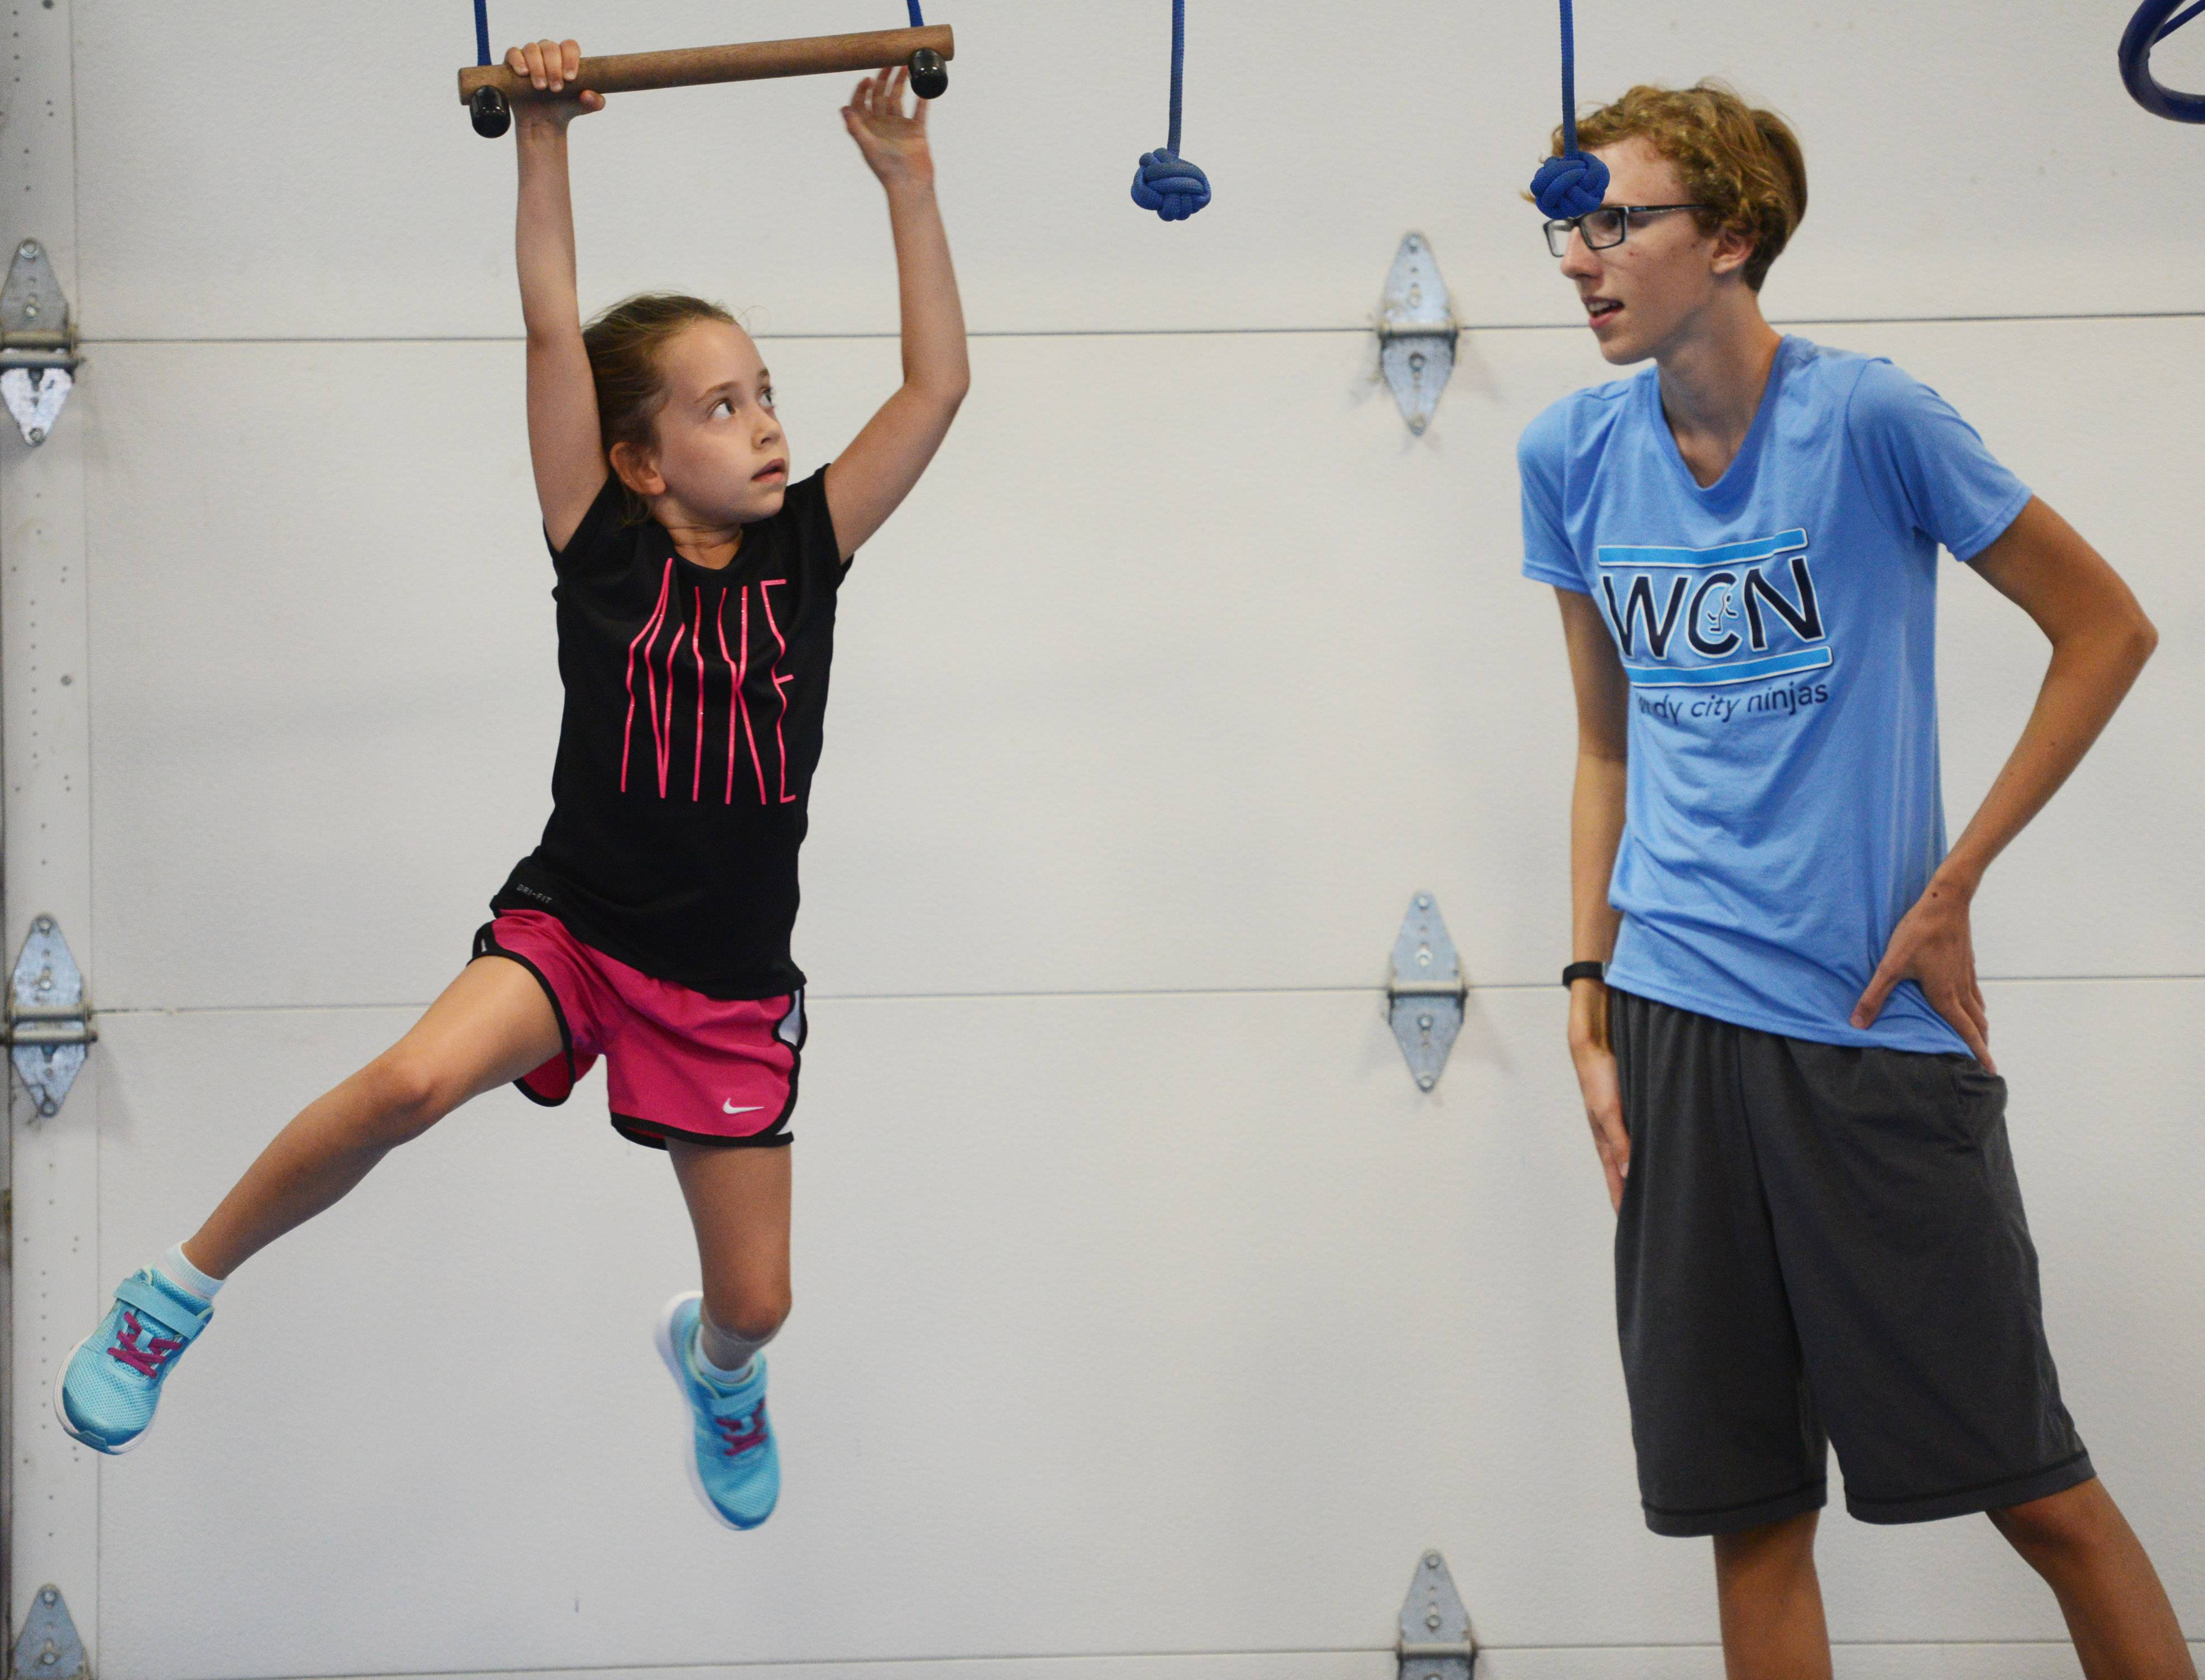 Harper Staley, 6, navigates an obstacle under the guidance of coach Evan Sedlacek.